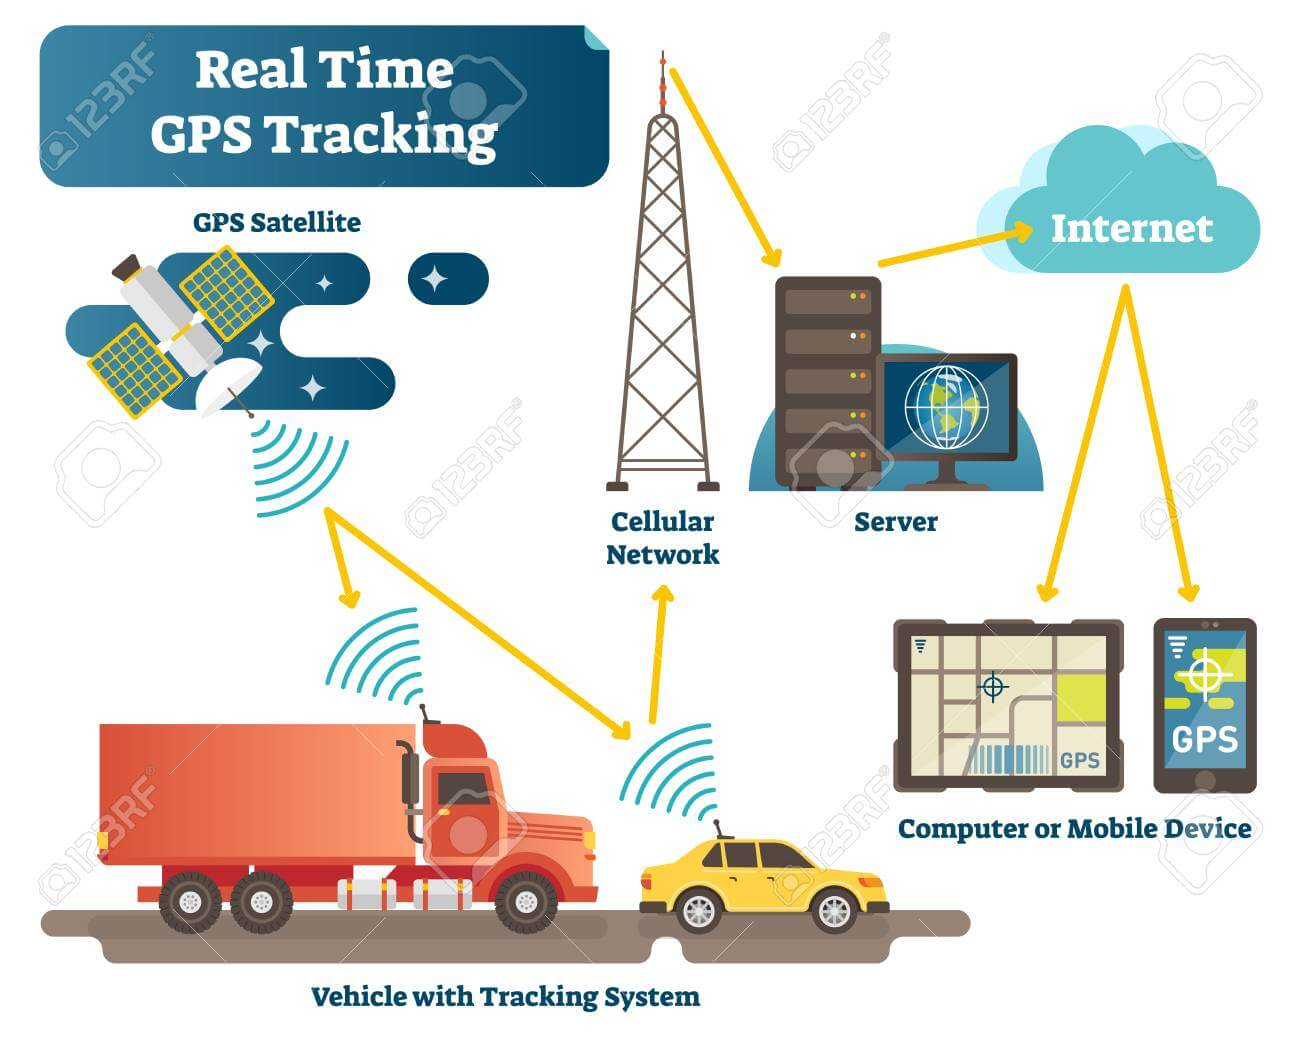 Real time GPS Tracking System